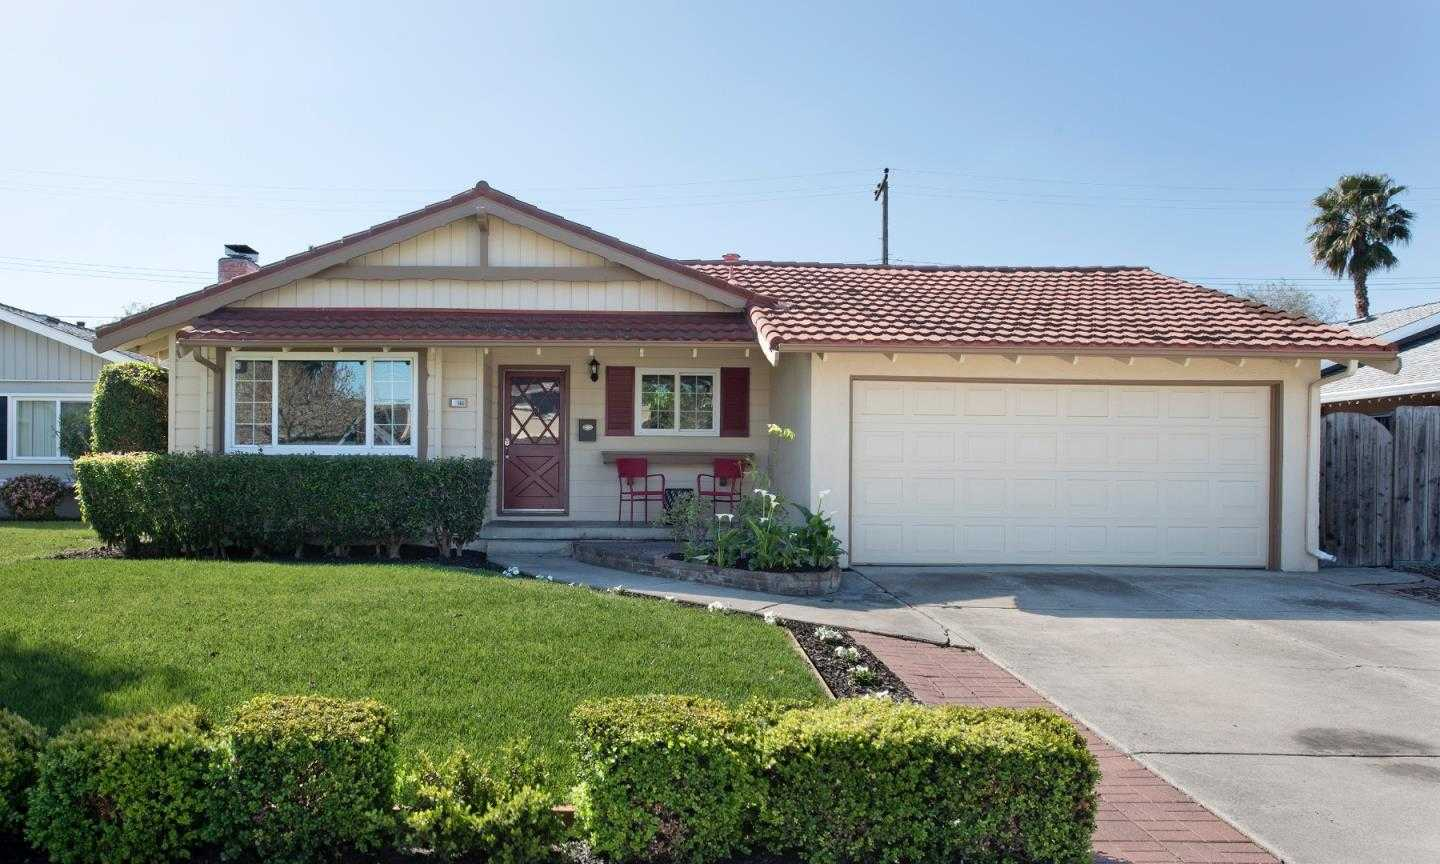 $1,298,000 - 3Br/2Ba -  for Sale in Santa Clara